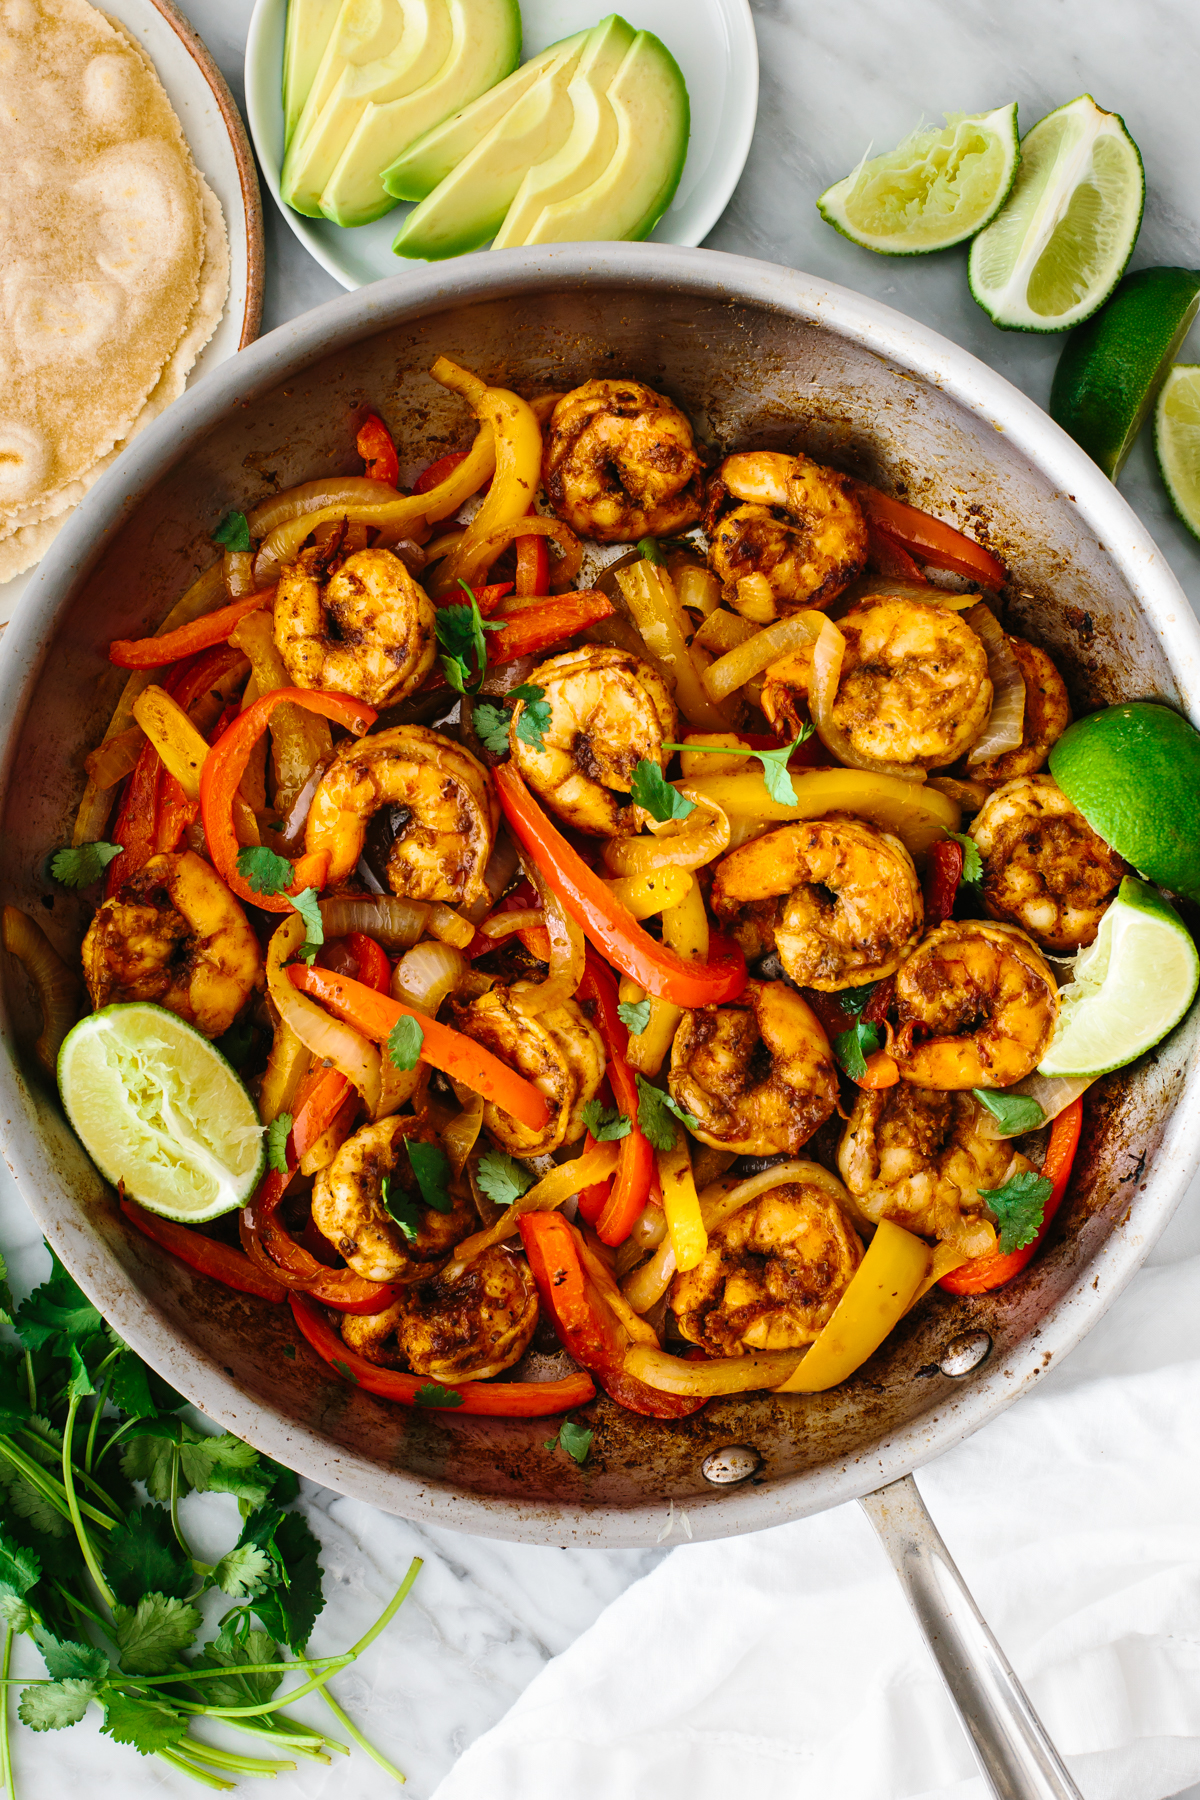 Shrimp fajitas in a pan with avocado slices and lime wedges.